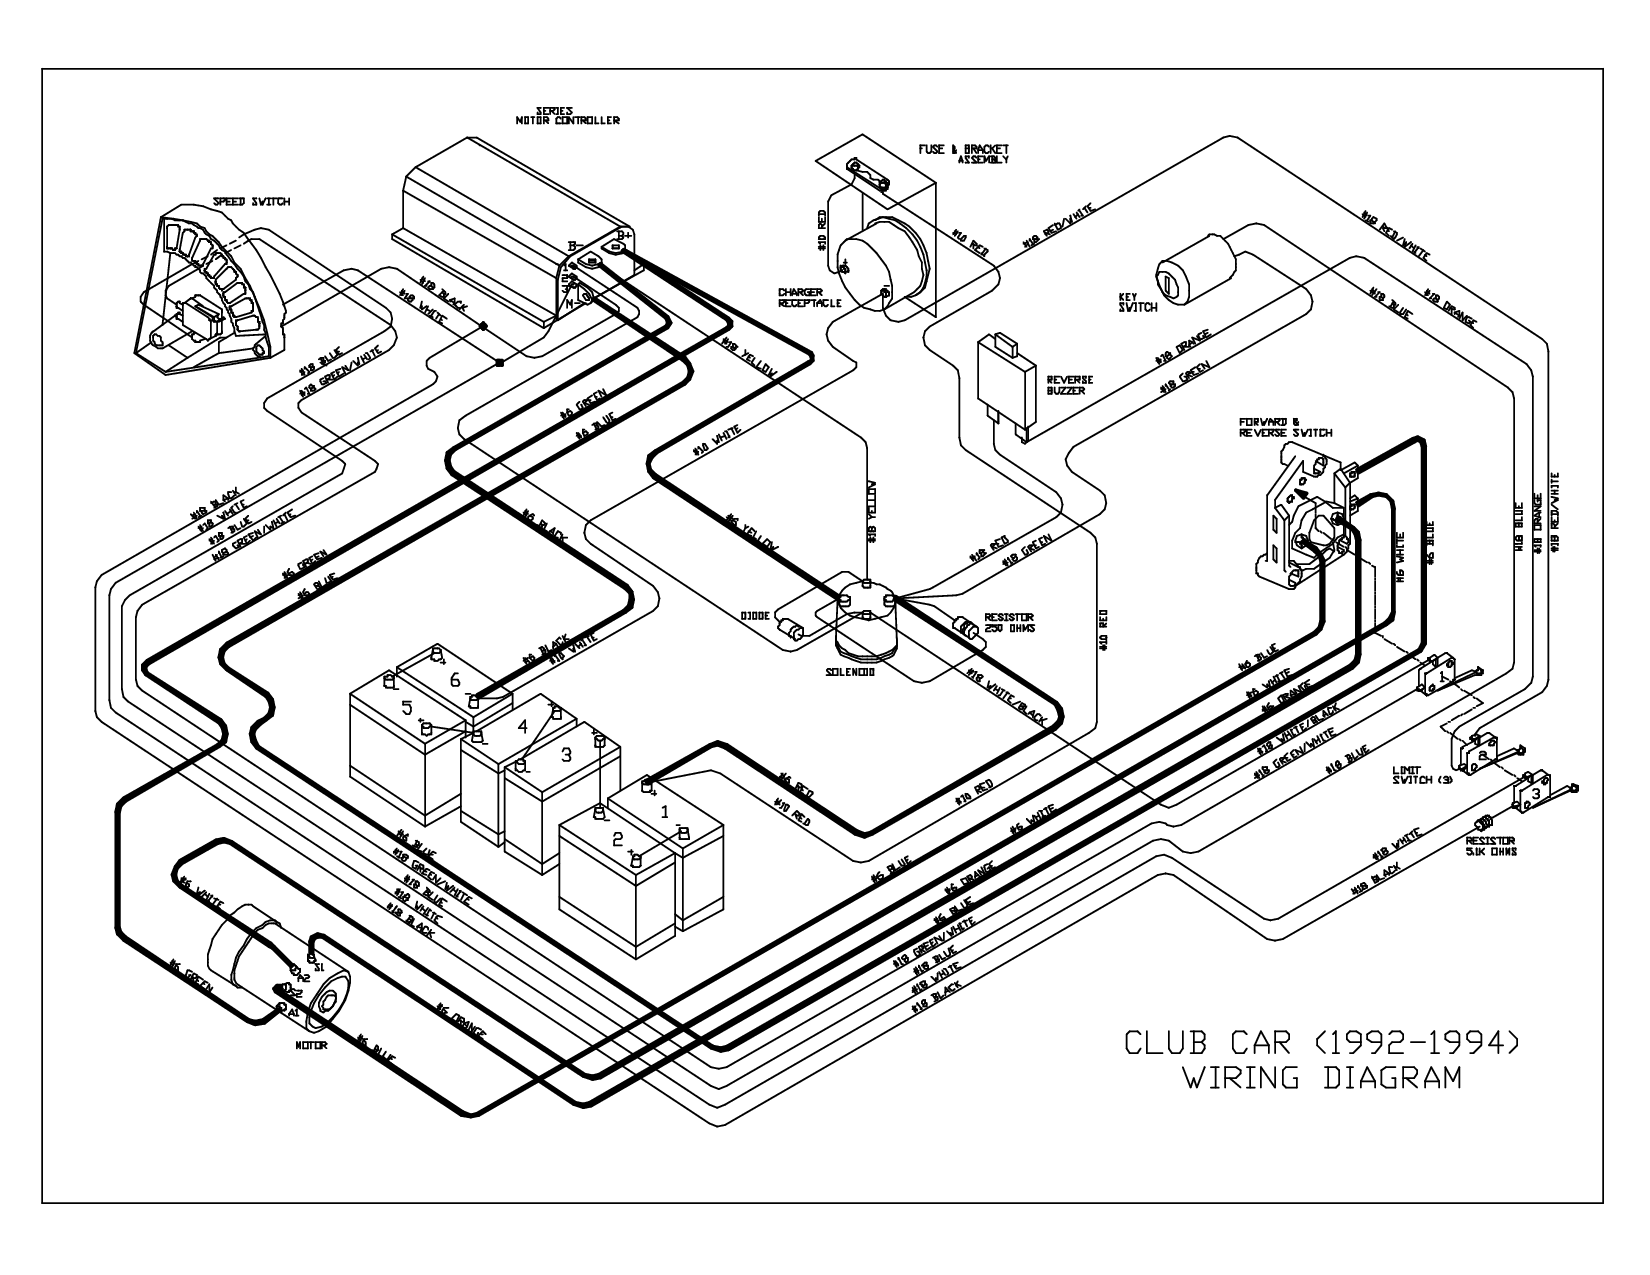 1994 club car ds wiring diagram free download wiring diagrams schematics